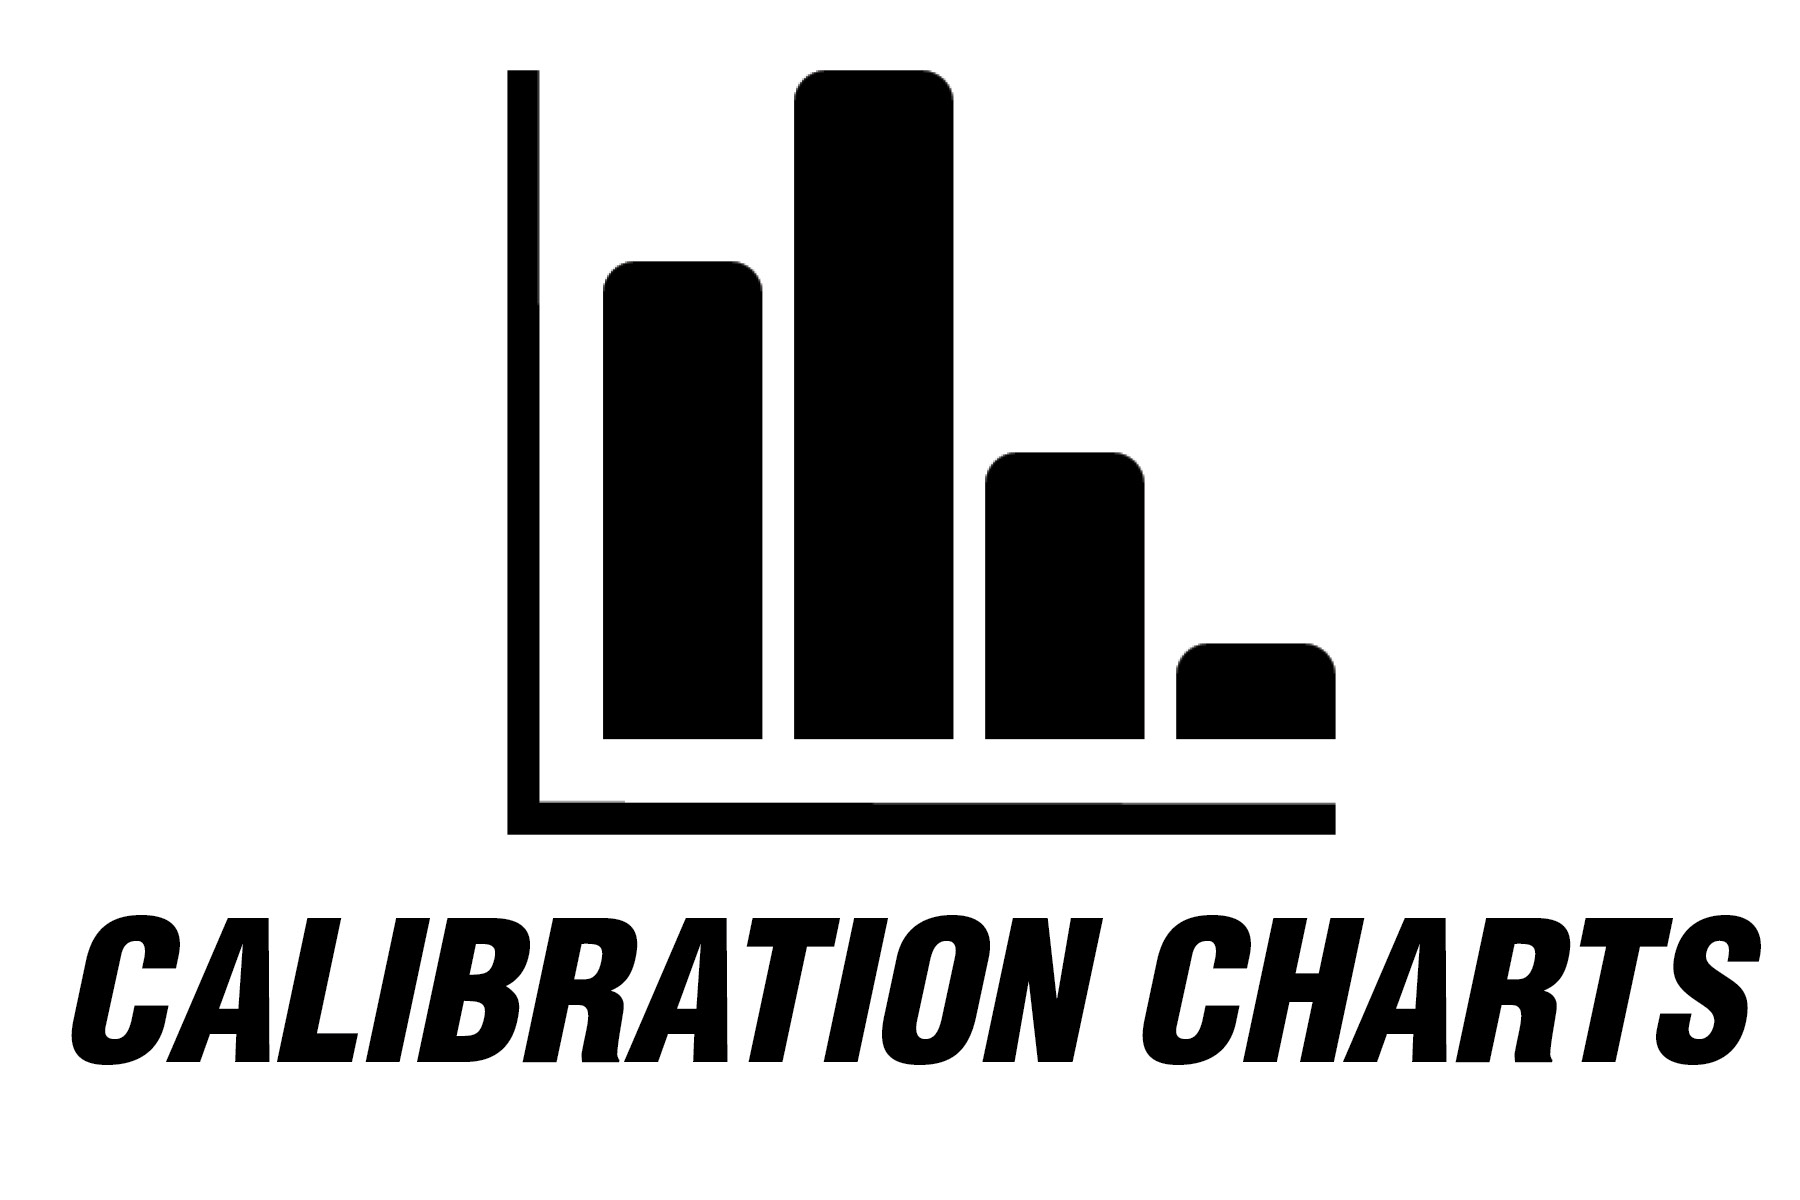 Calibration Charts